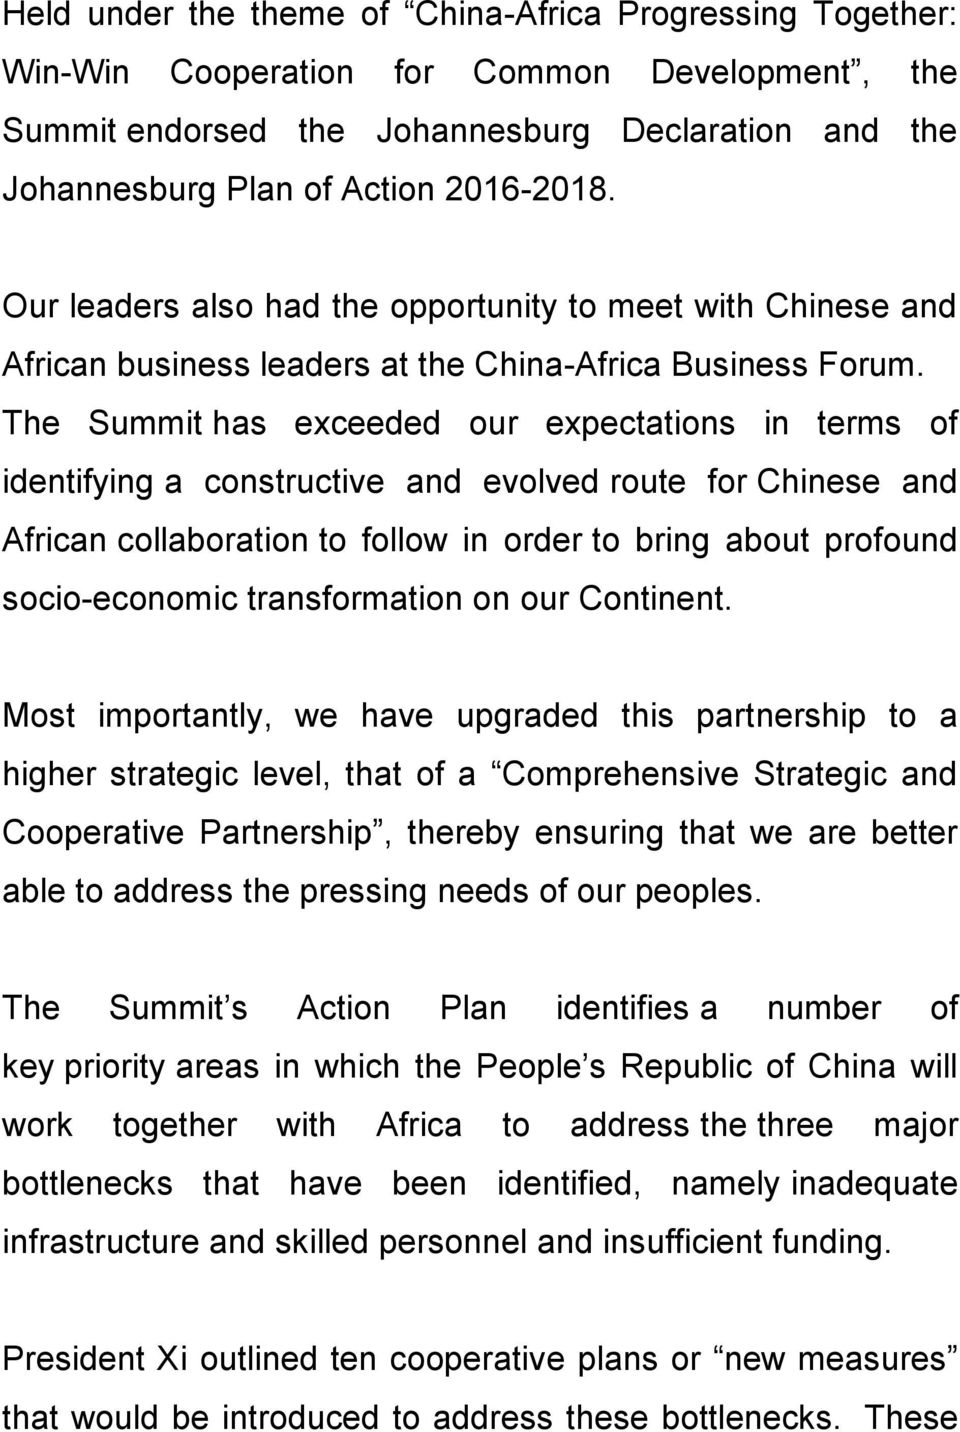 The Summit has exceeded our expectations in terms of identifying a constructive and evolved route for Chinese and African collaboration to follow in order to bring about profound socio-economic